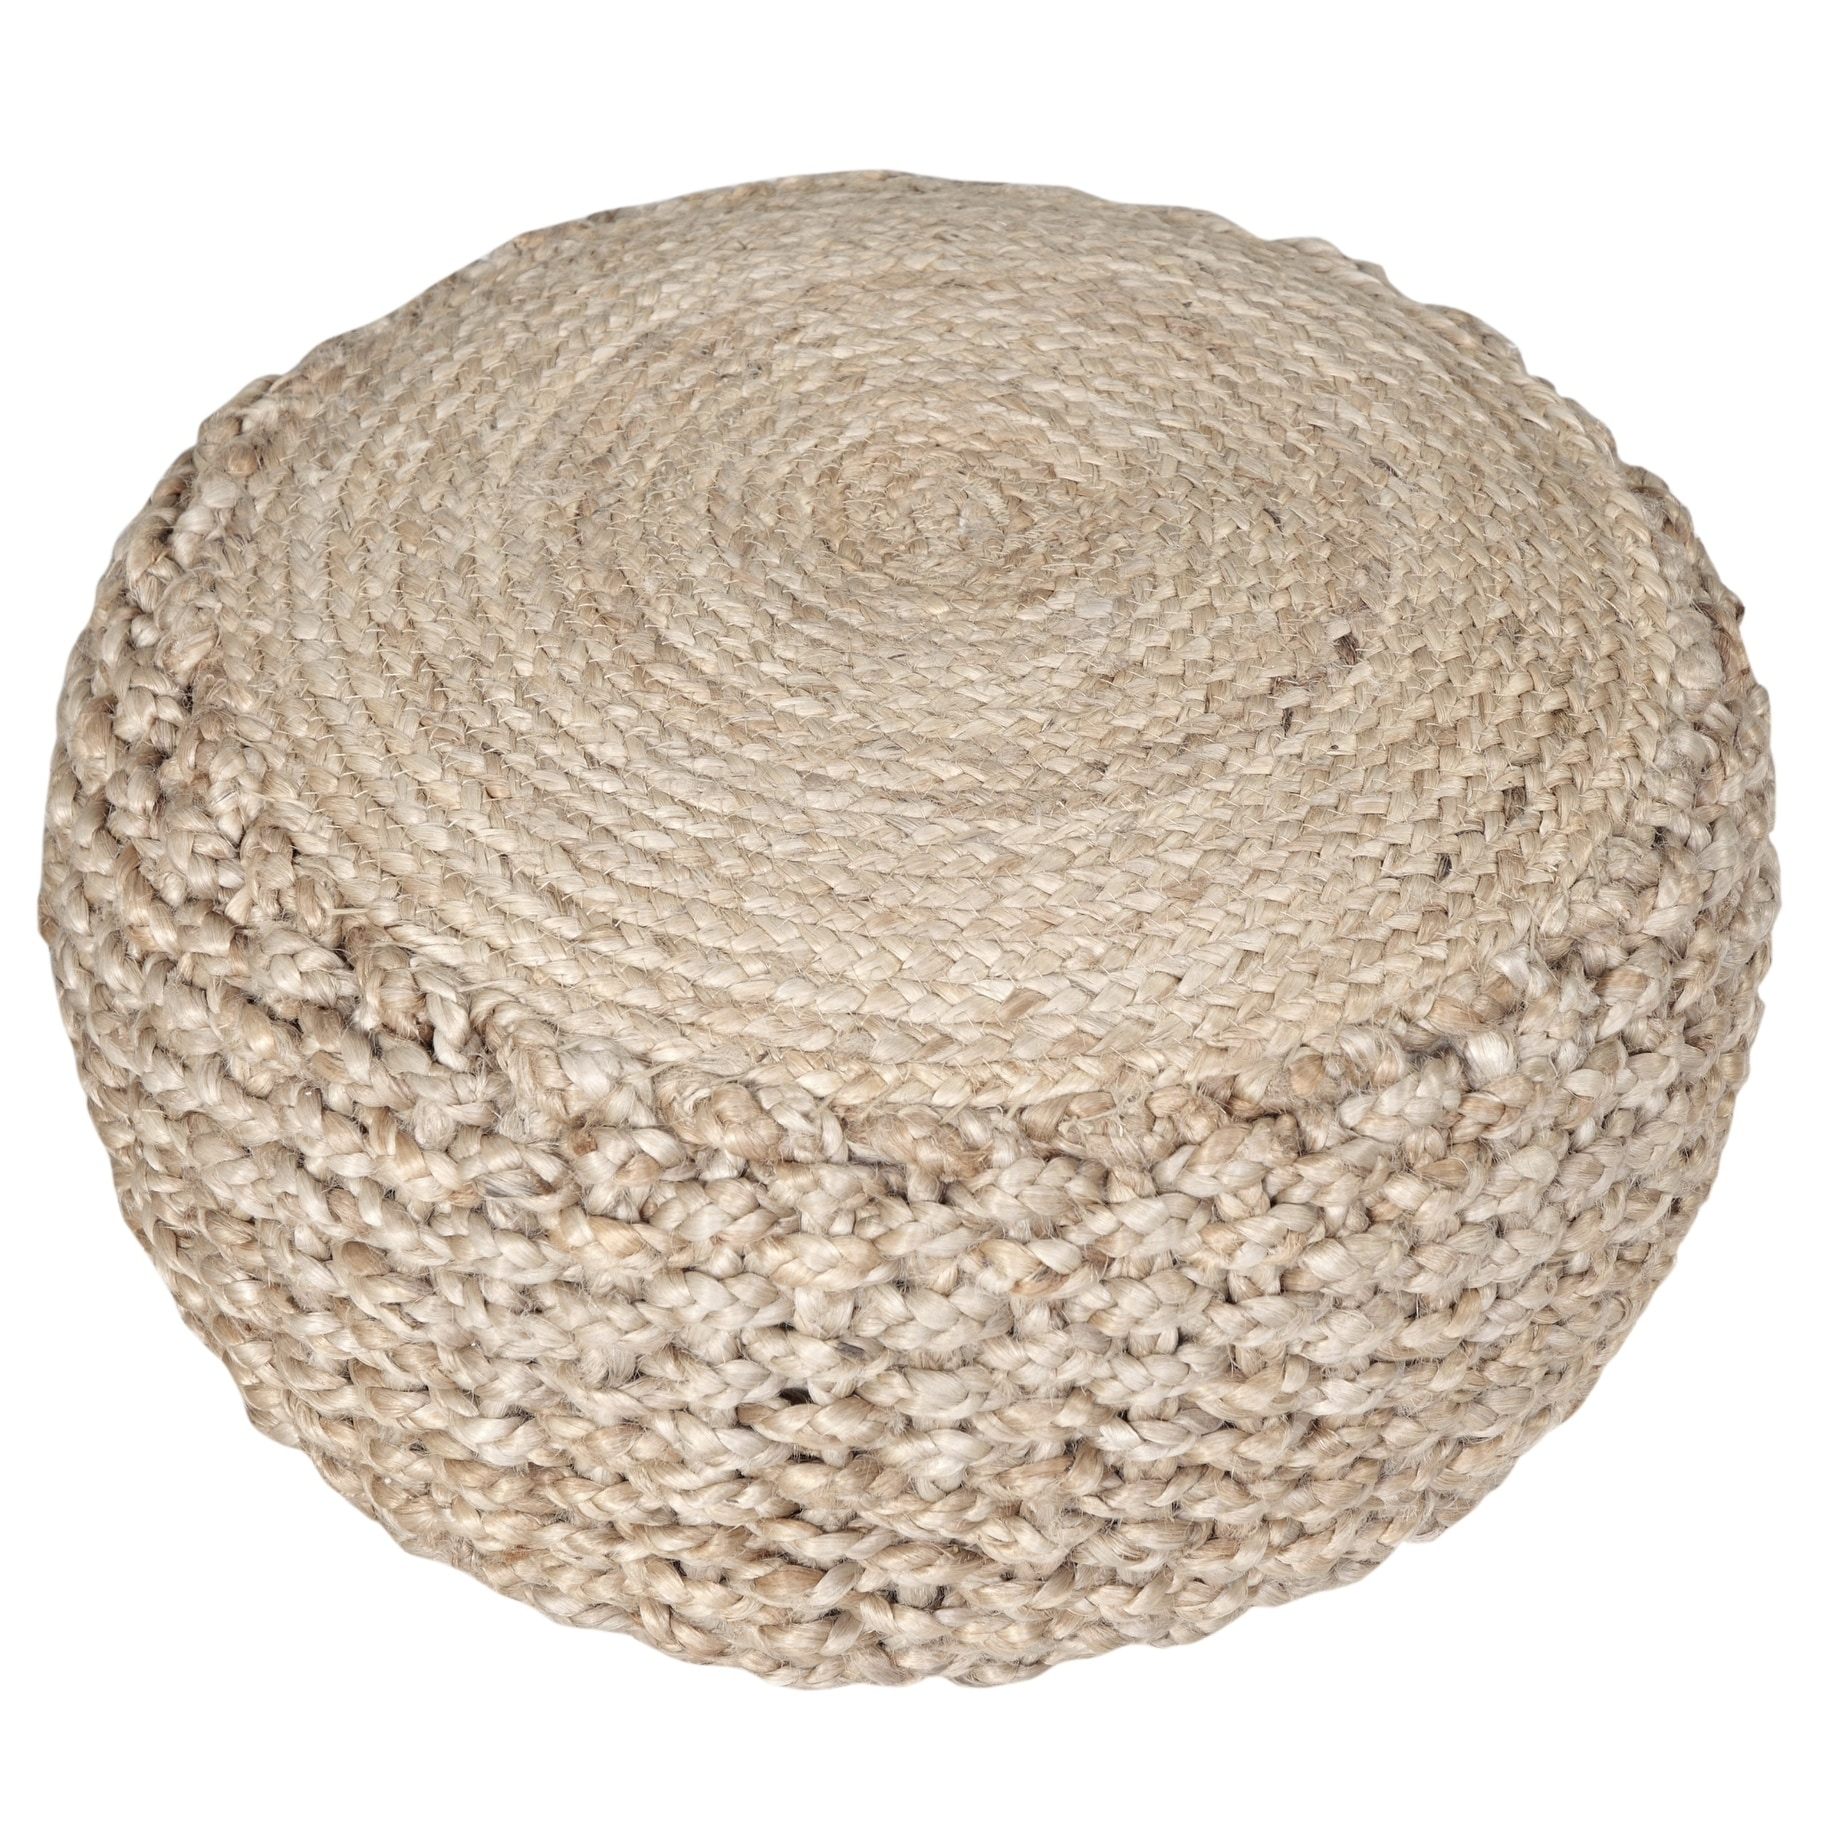 Hand Knitted Decorative Round Cotton Pouf 14 Inch X 20 Inch X 20 Inch Braid Cord Textured Round Foot Home Decorative Perfect Patio Seating Gold